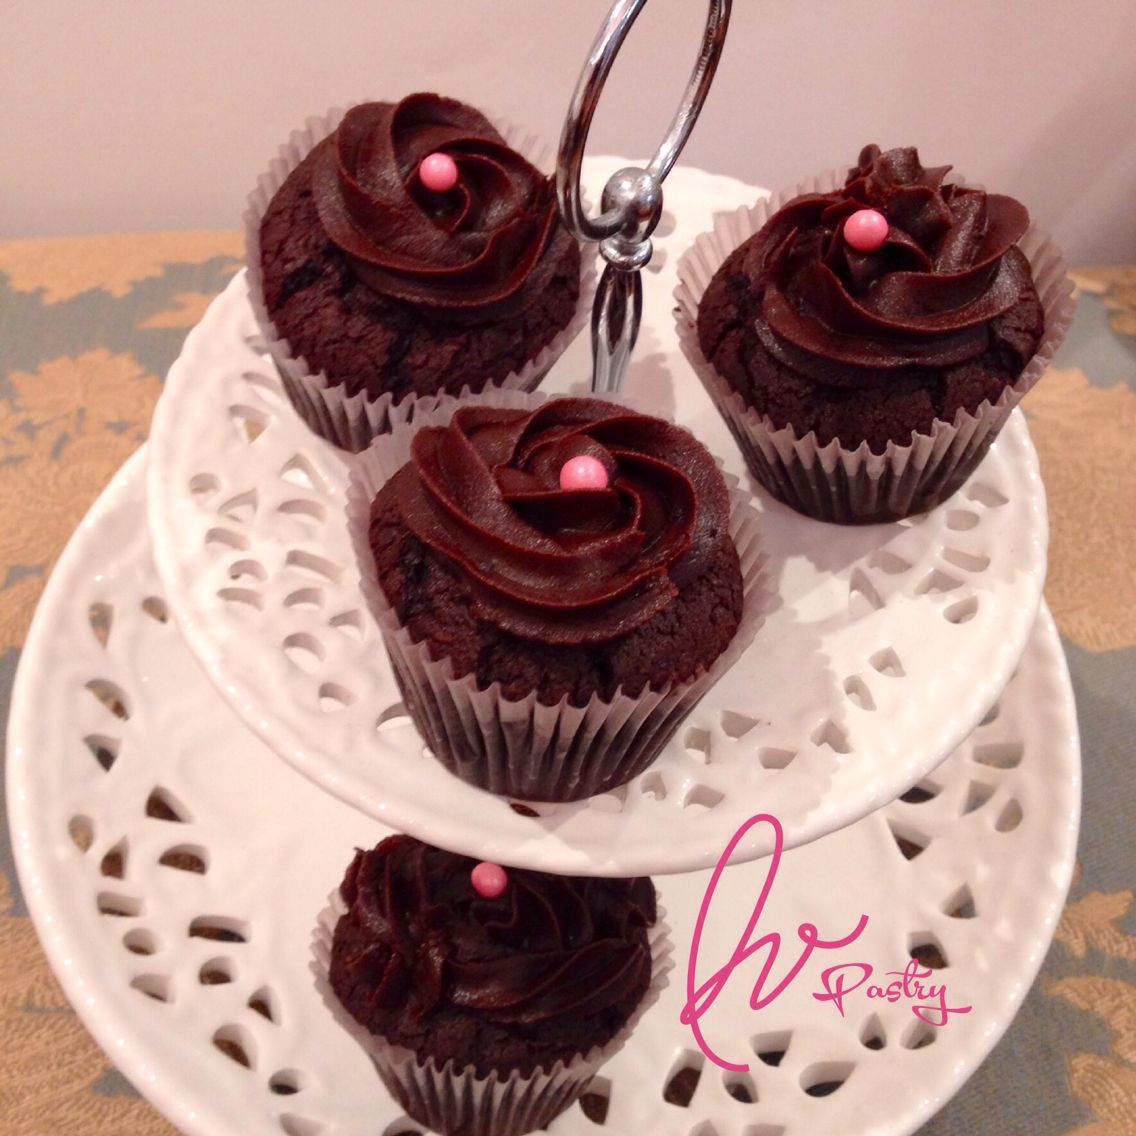 Cupcake de chocolate con fudge de chocolate casero.